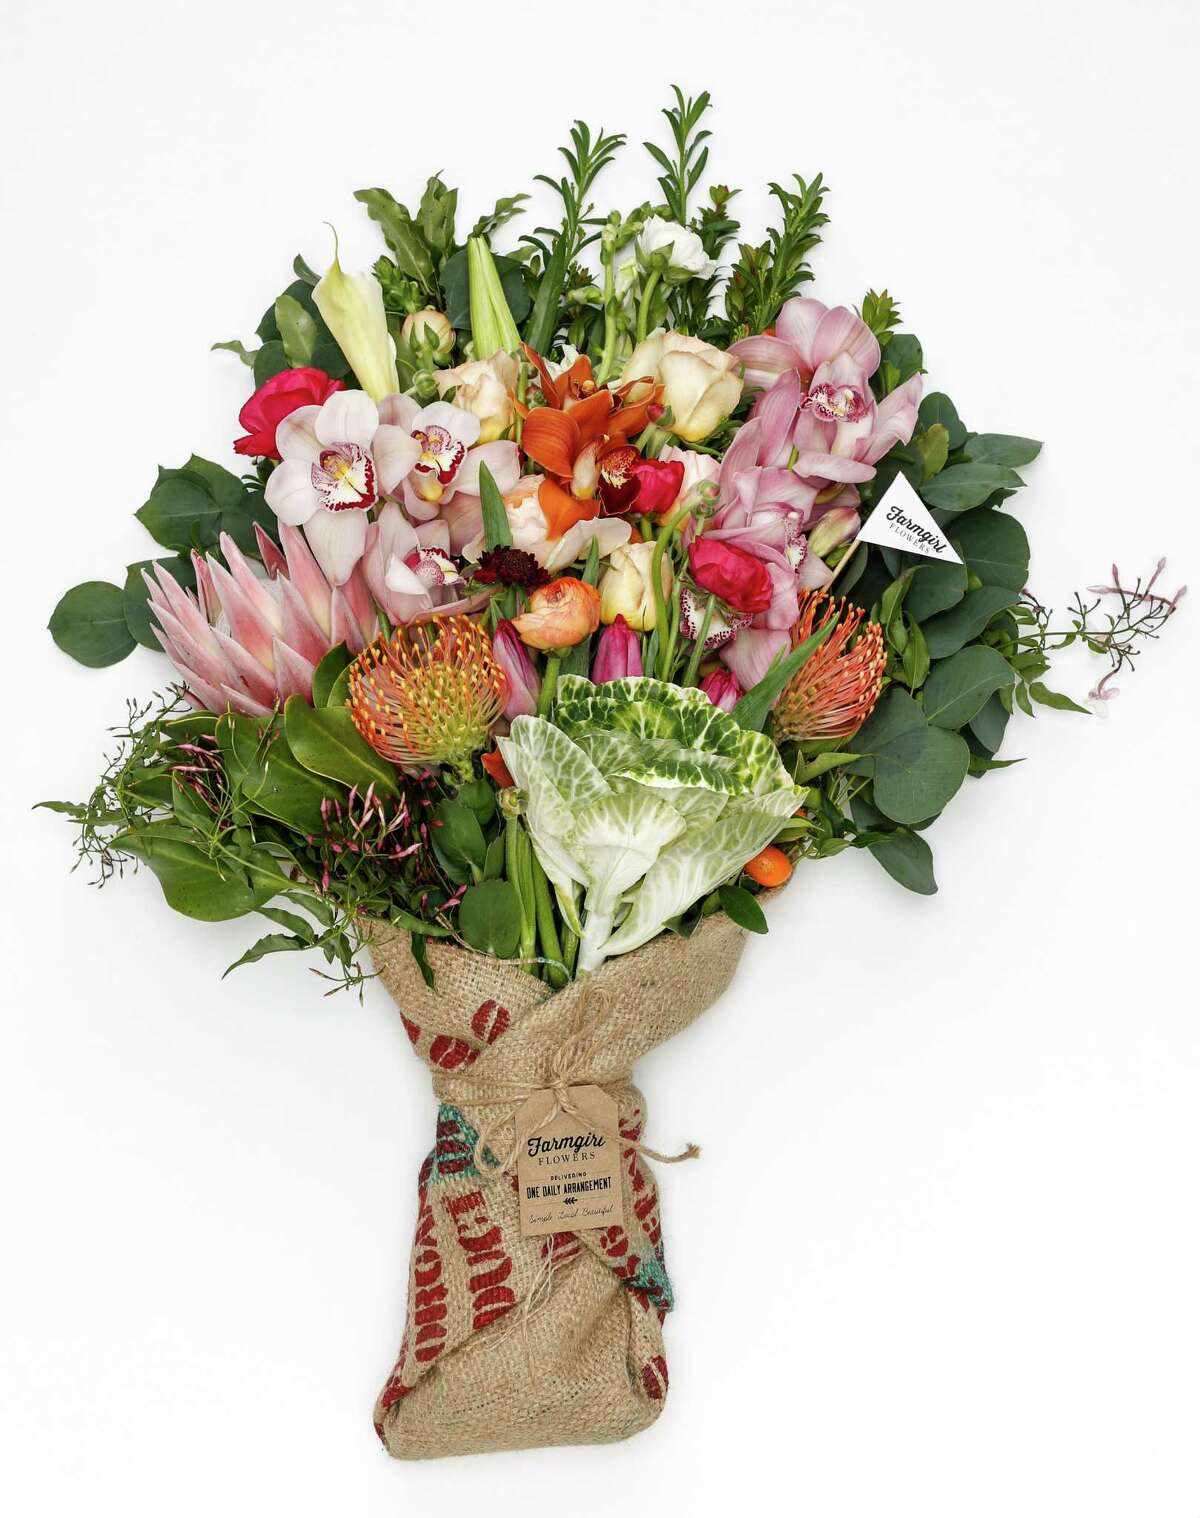 Farmgirl Flowers offers a single daily arrangement wrapped in recycled burlap.